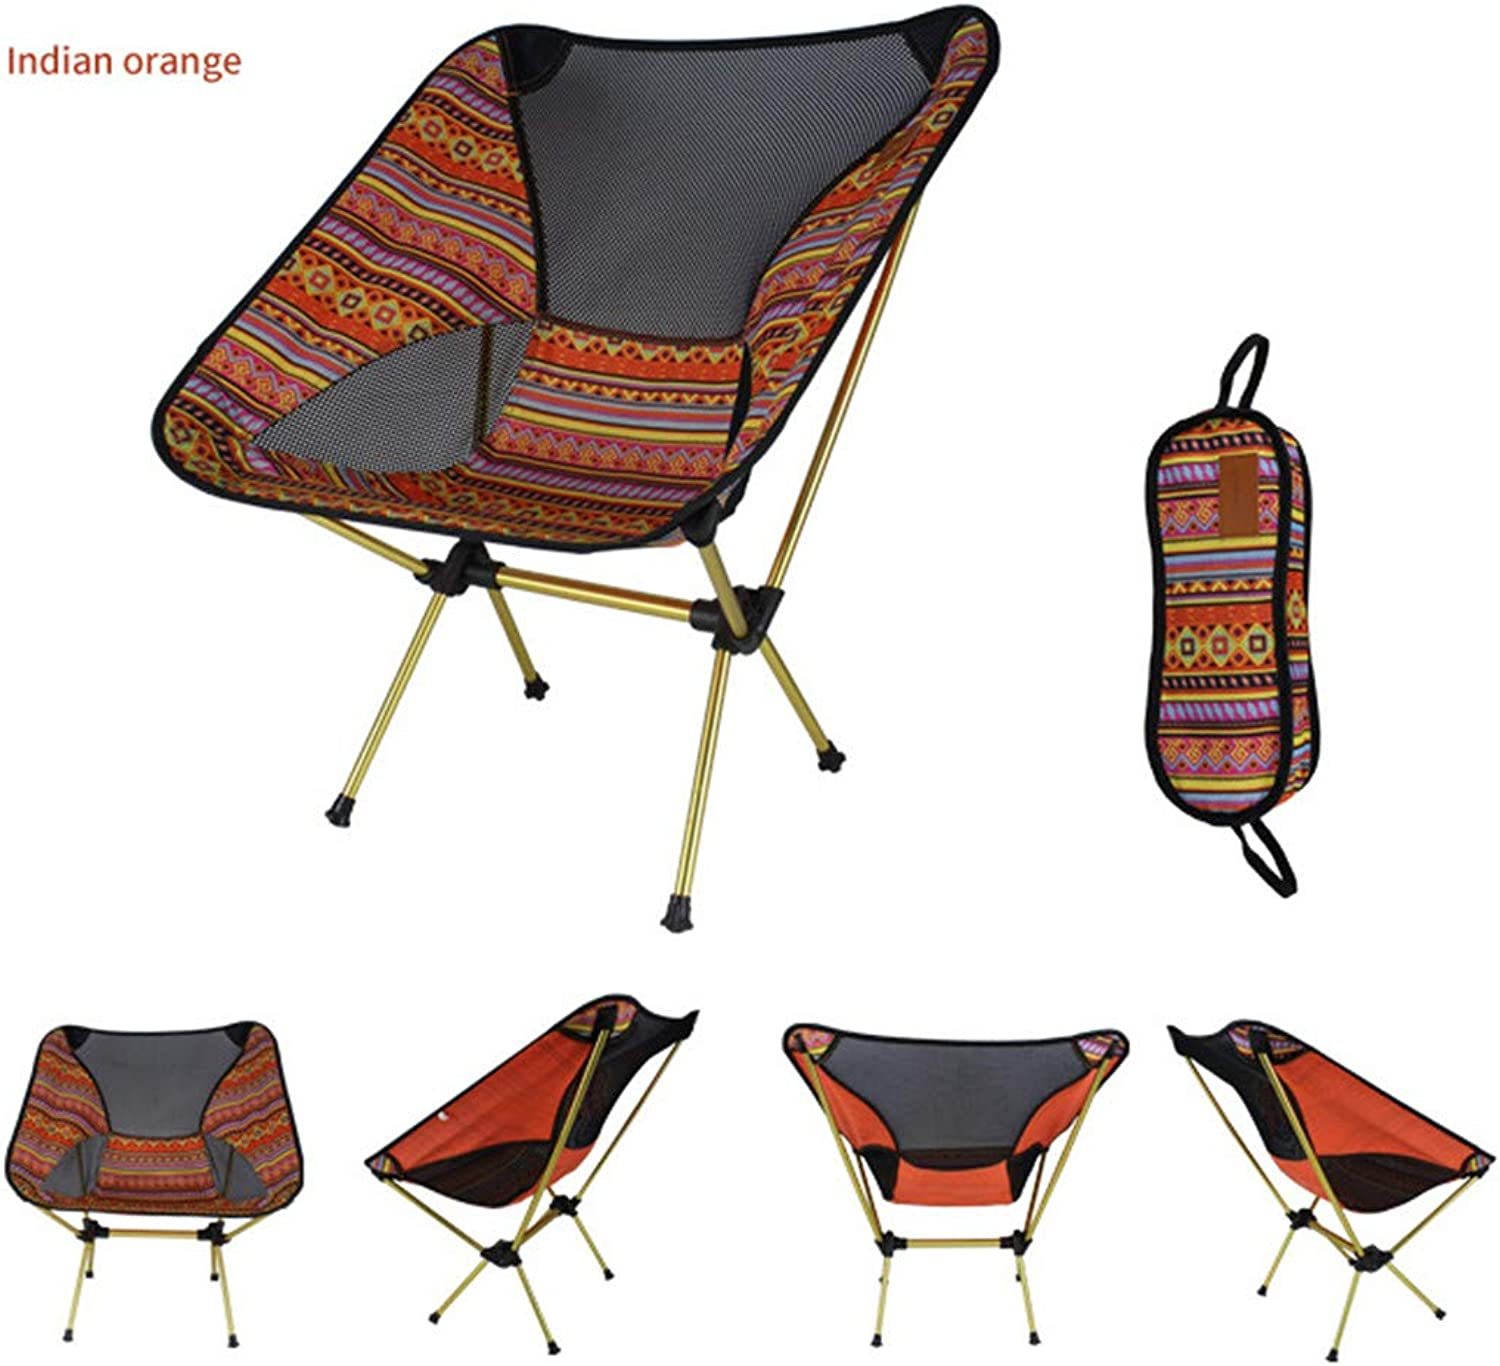 Portable Beach Chair Outdoor Folding Chair Portable Moon Chair Compact Ultralight Folding Camping Chairs Lightweight